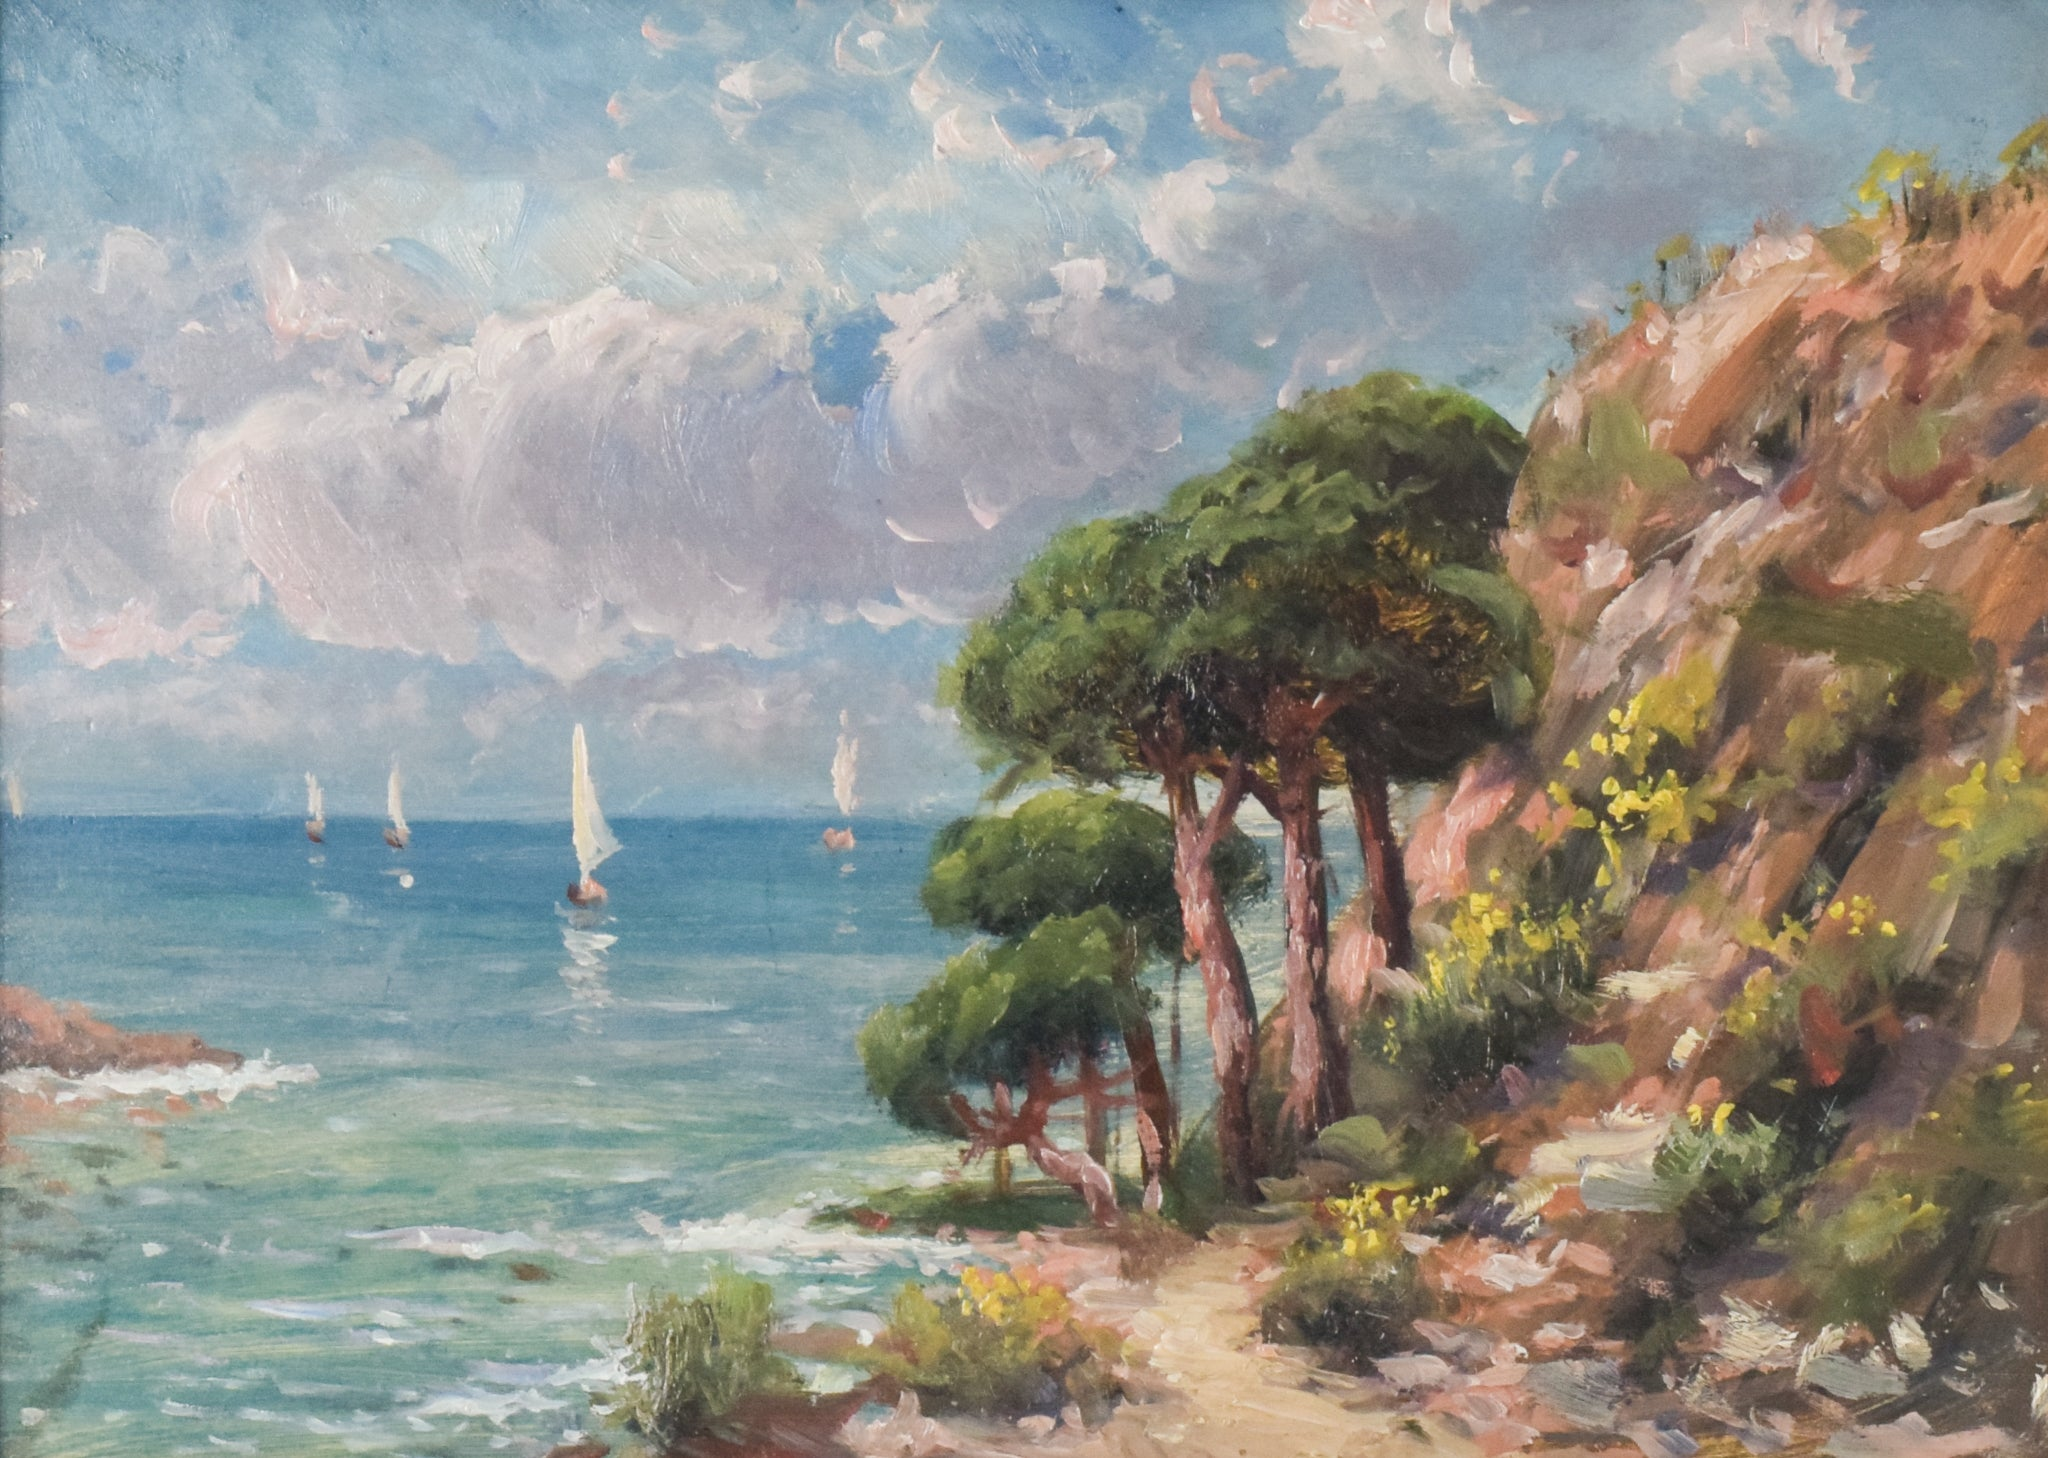 Coastal Landscape with Sailings Boats and Flowers